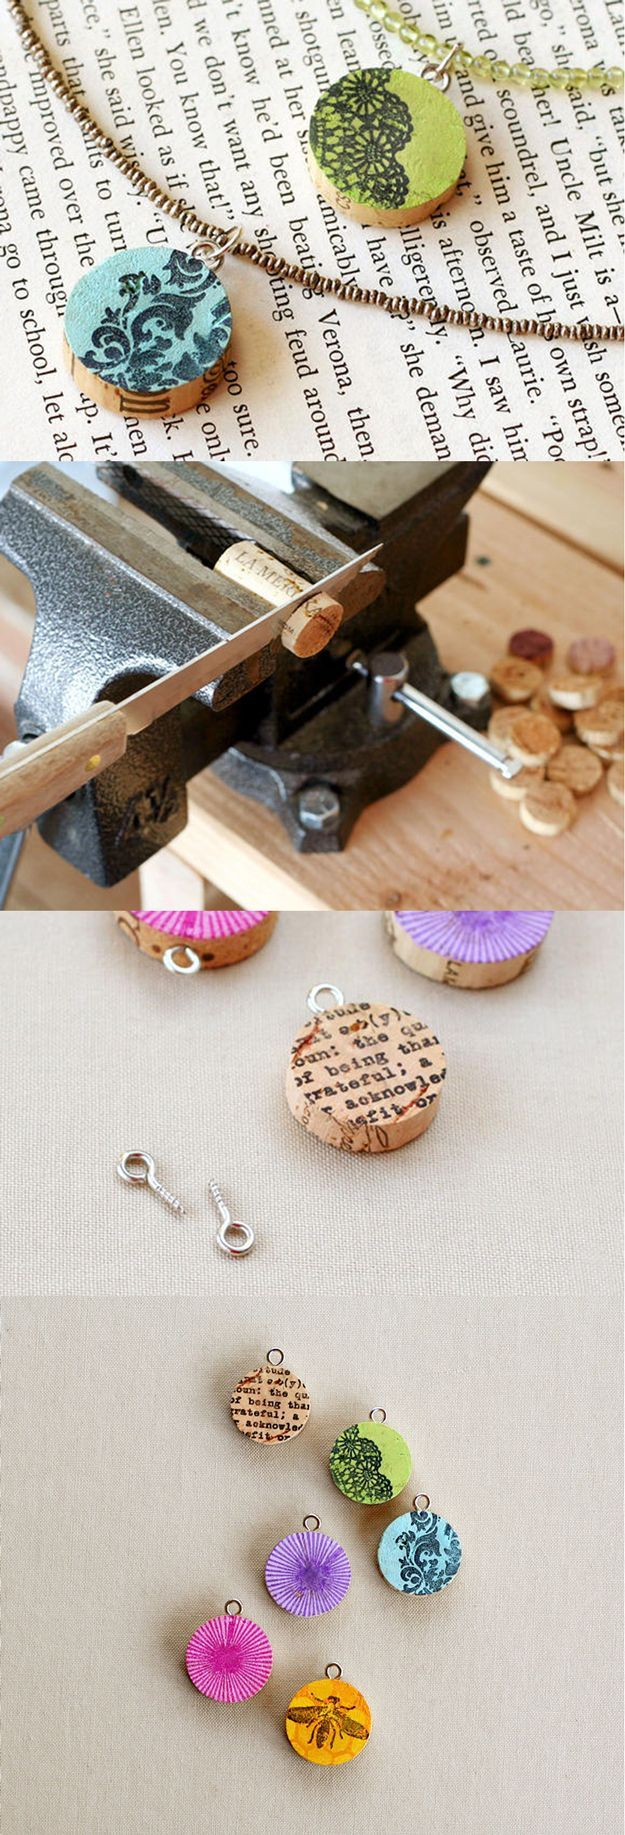 Best 25+ Corks ideas on Pinterest | Wine cork crafts, Wine cork ...